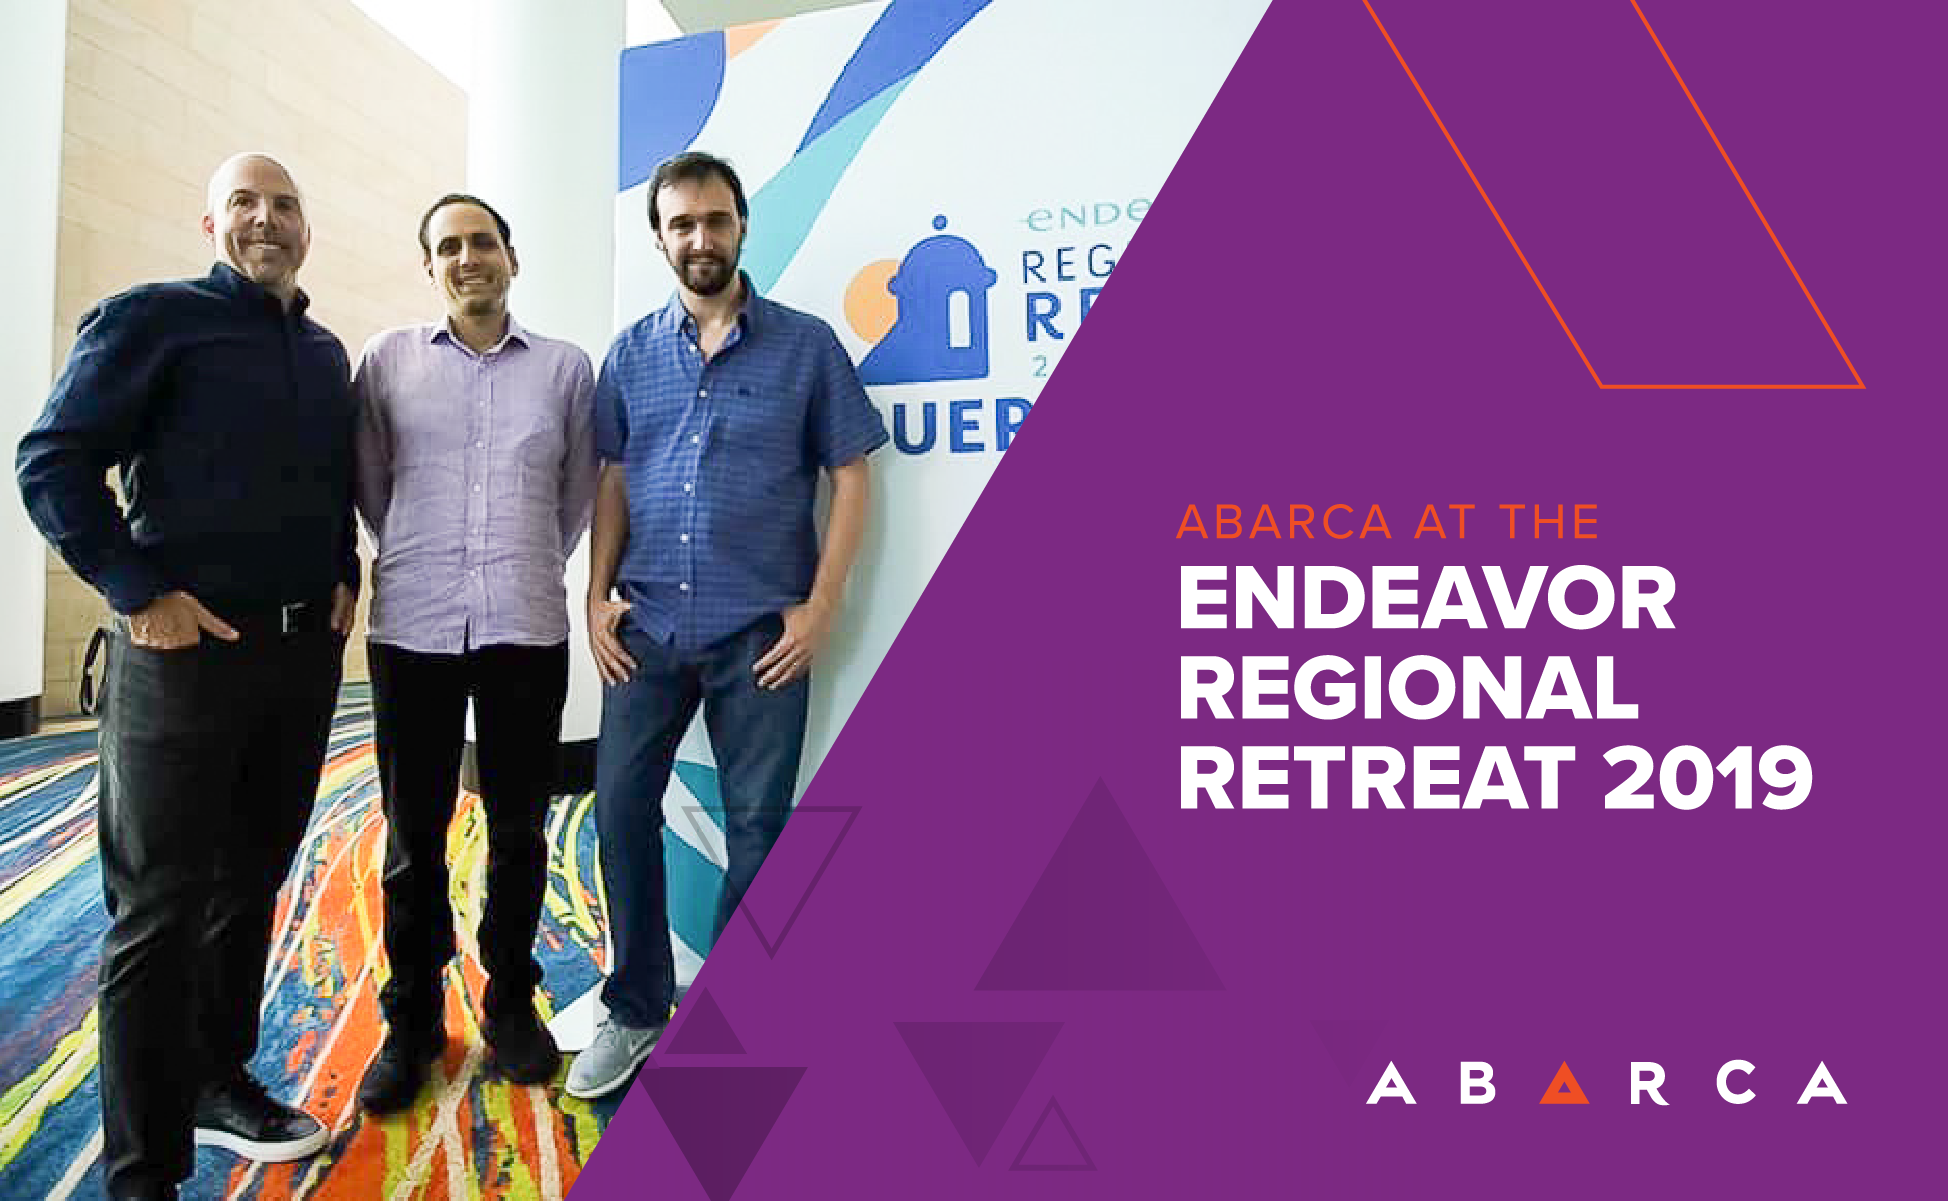 Abarca participated at the Endeavor Regional Retreat 2019